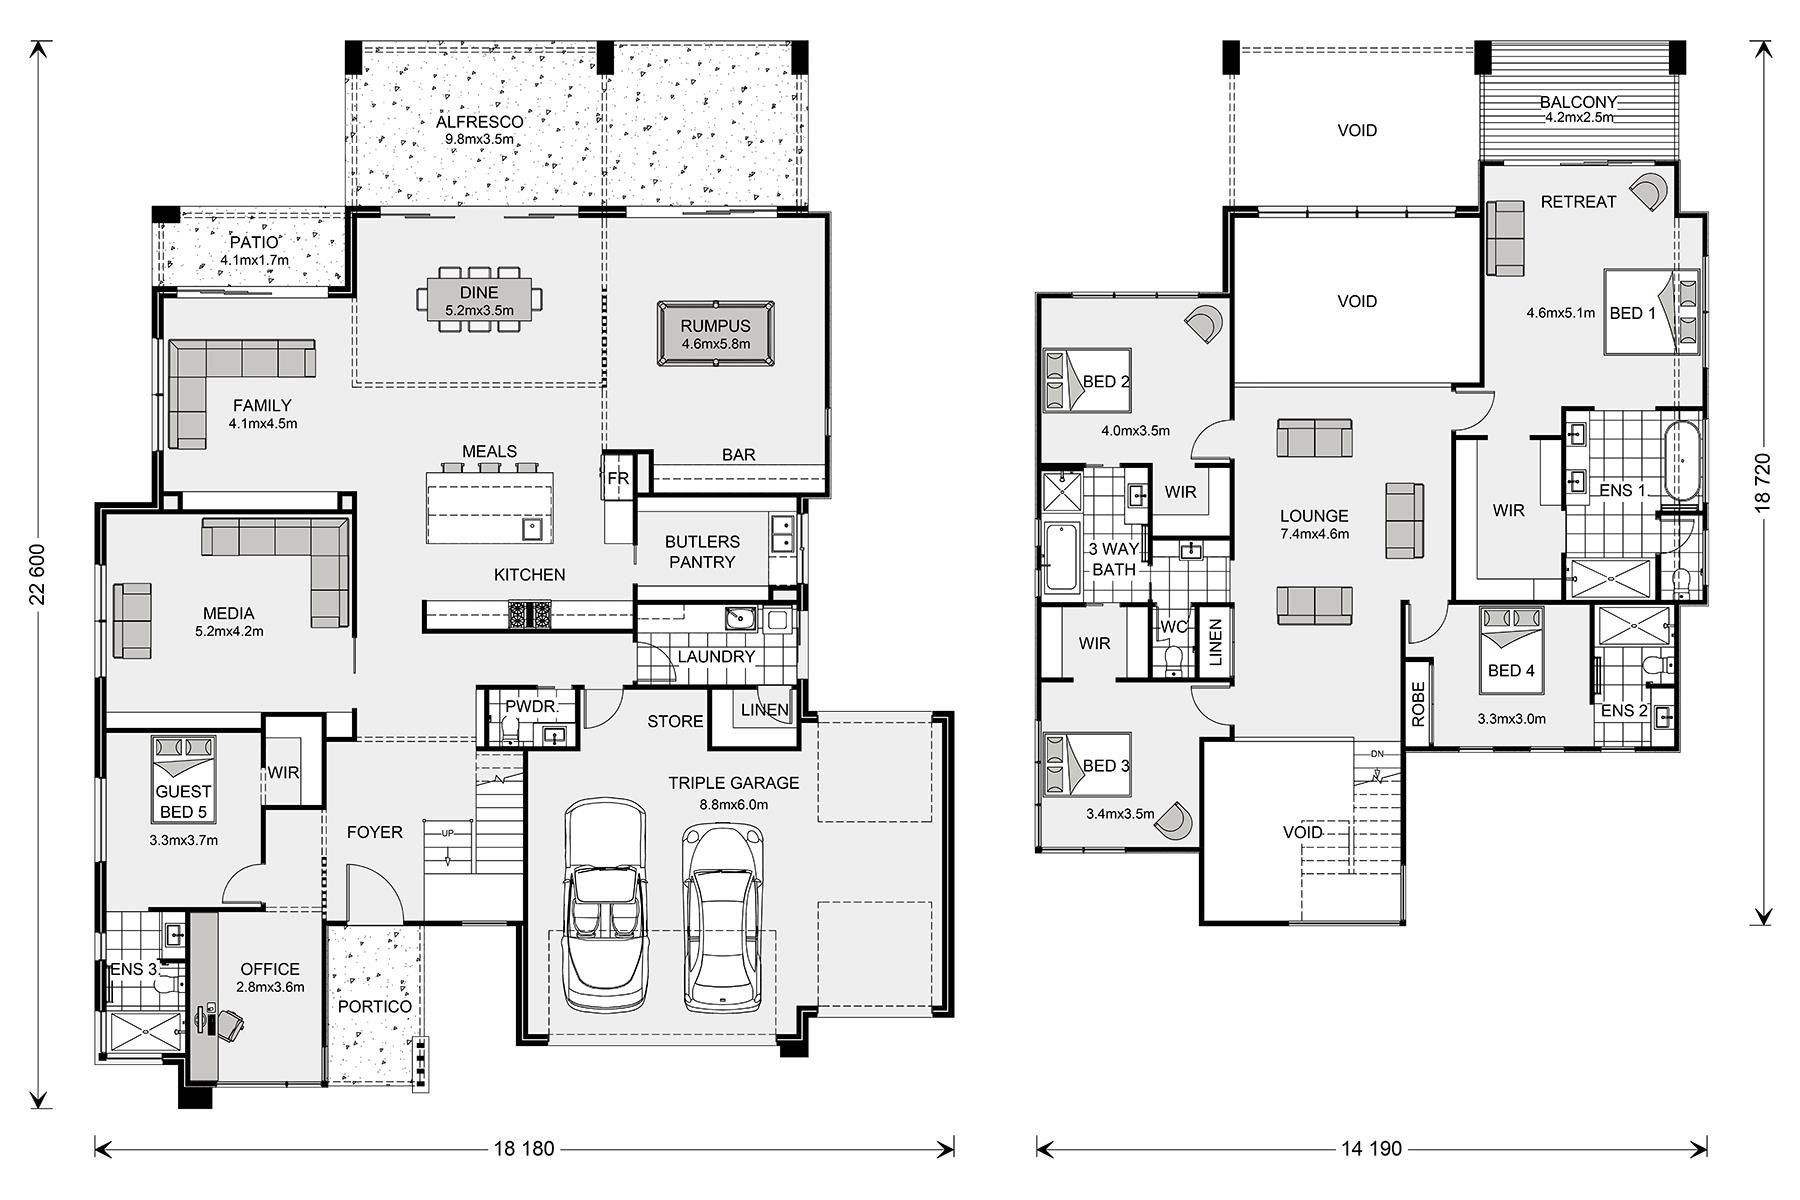 Pin By Fariha N On Architecture House Plans Australia Floor Plans Dream House Plans